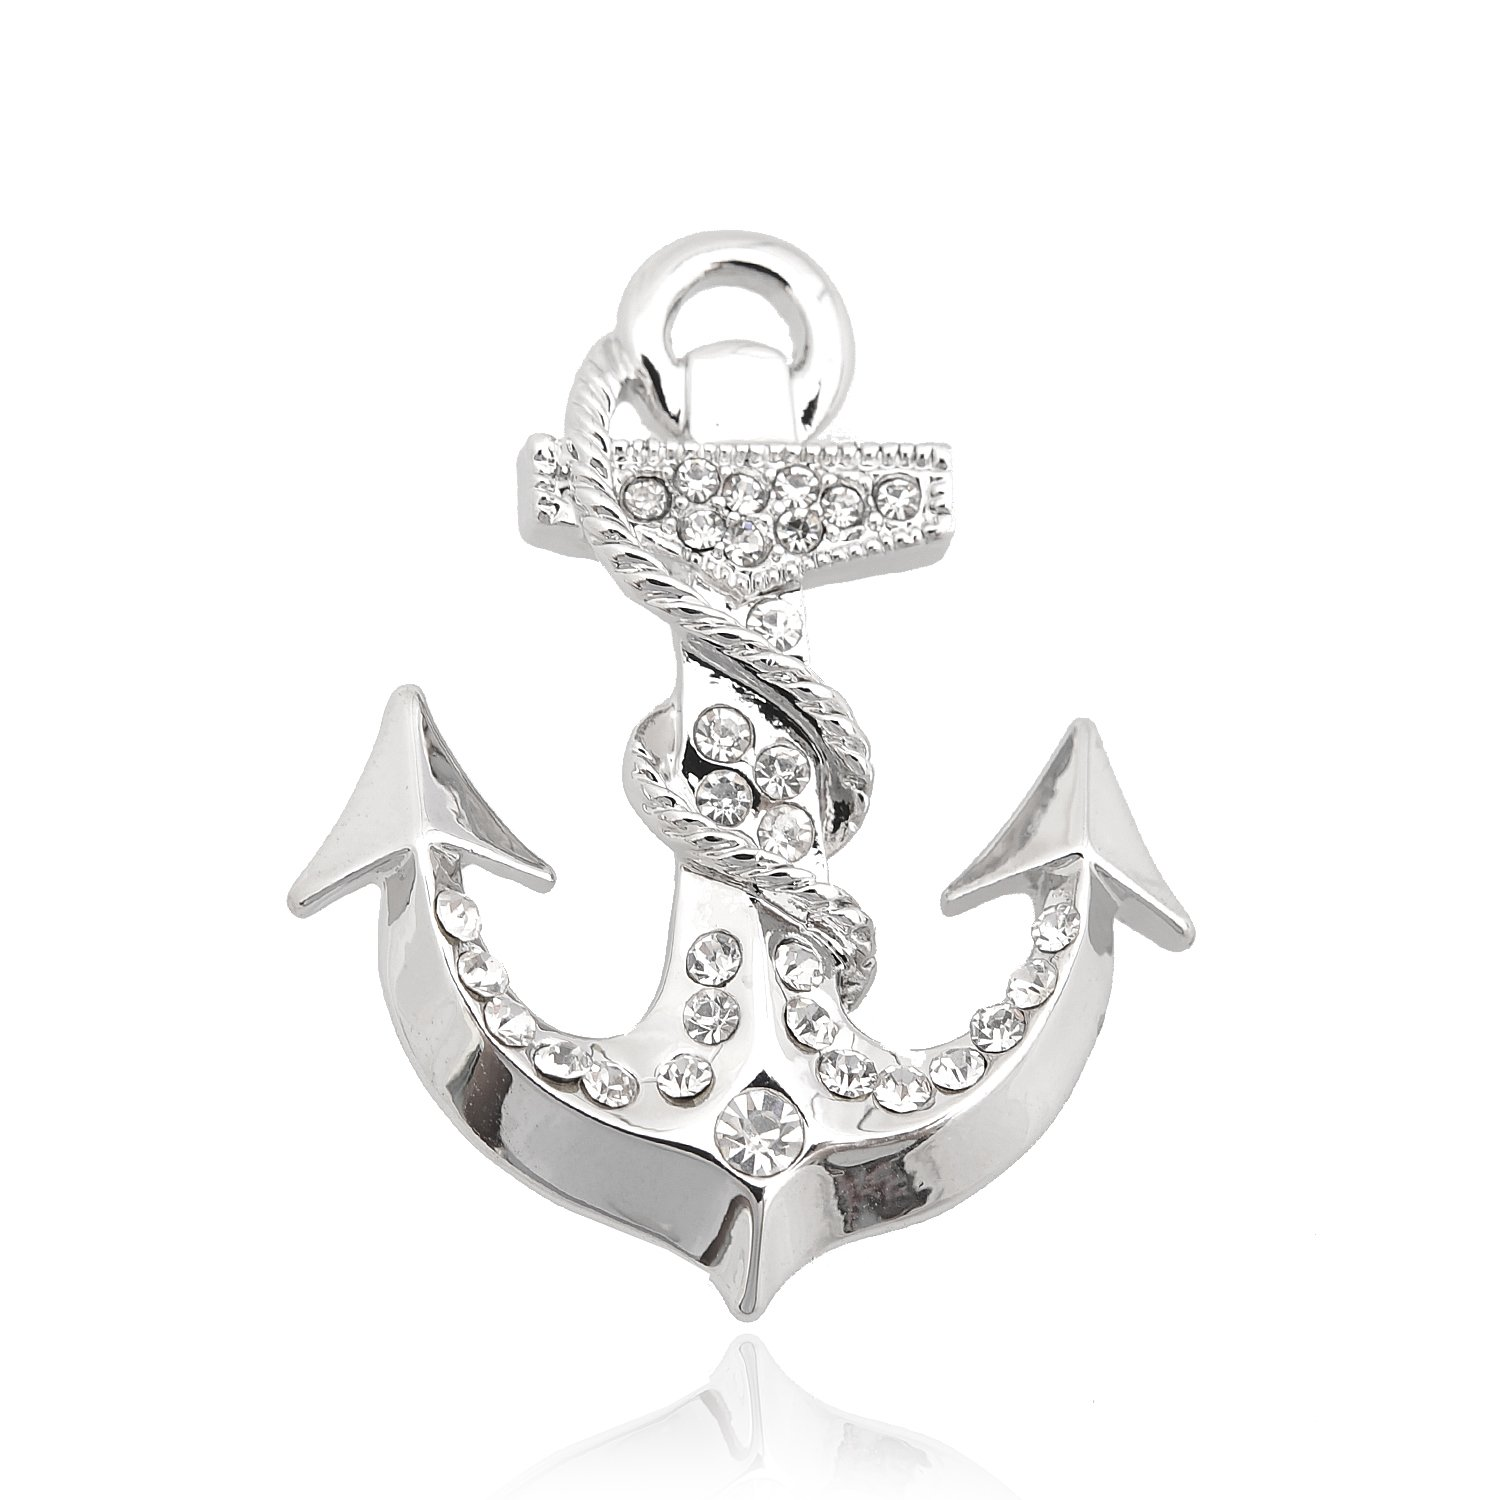 chelseachicNYC Silver Plated Spiritual Sea Anchor with Rope Brooch